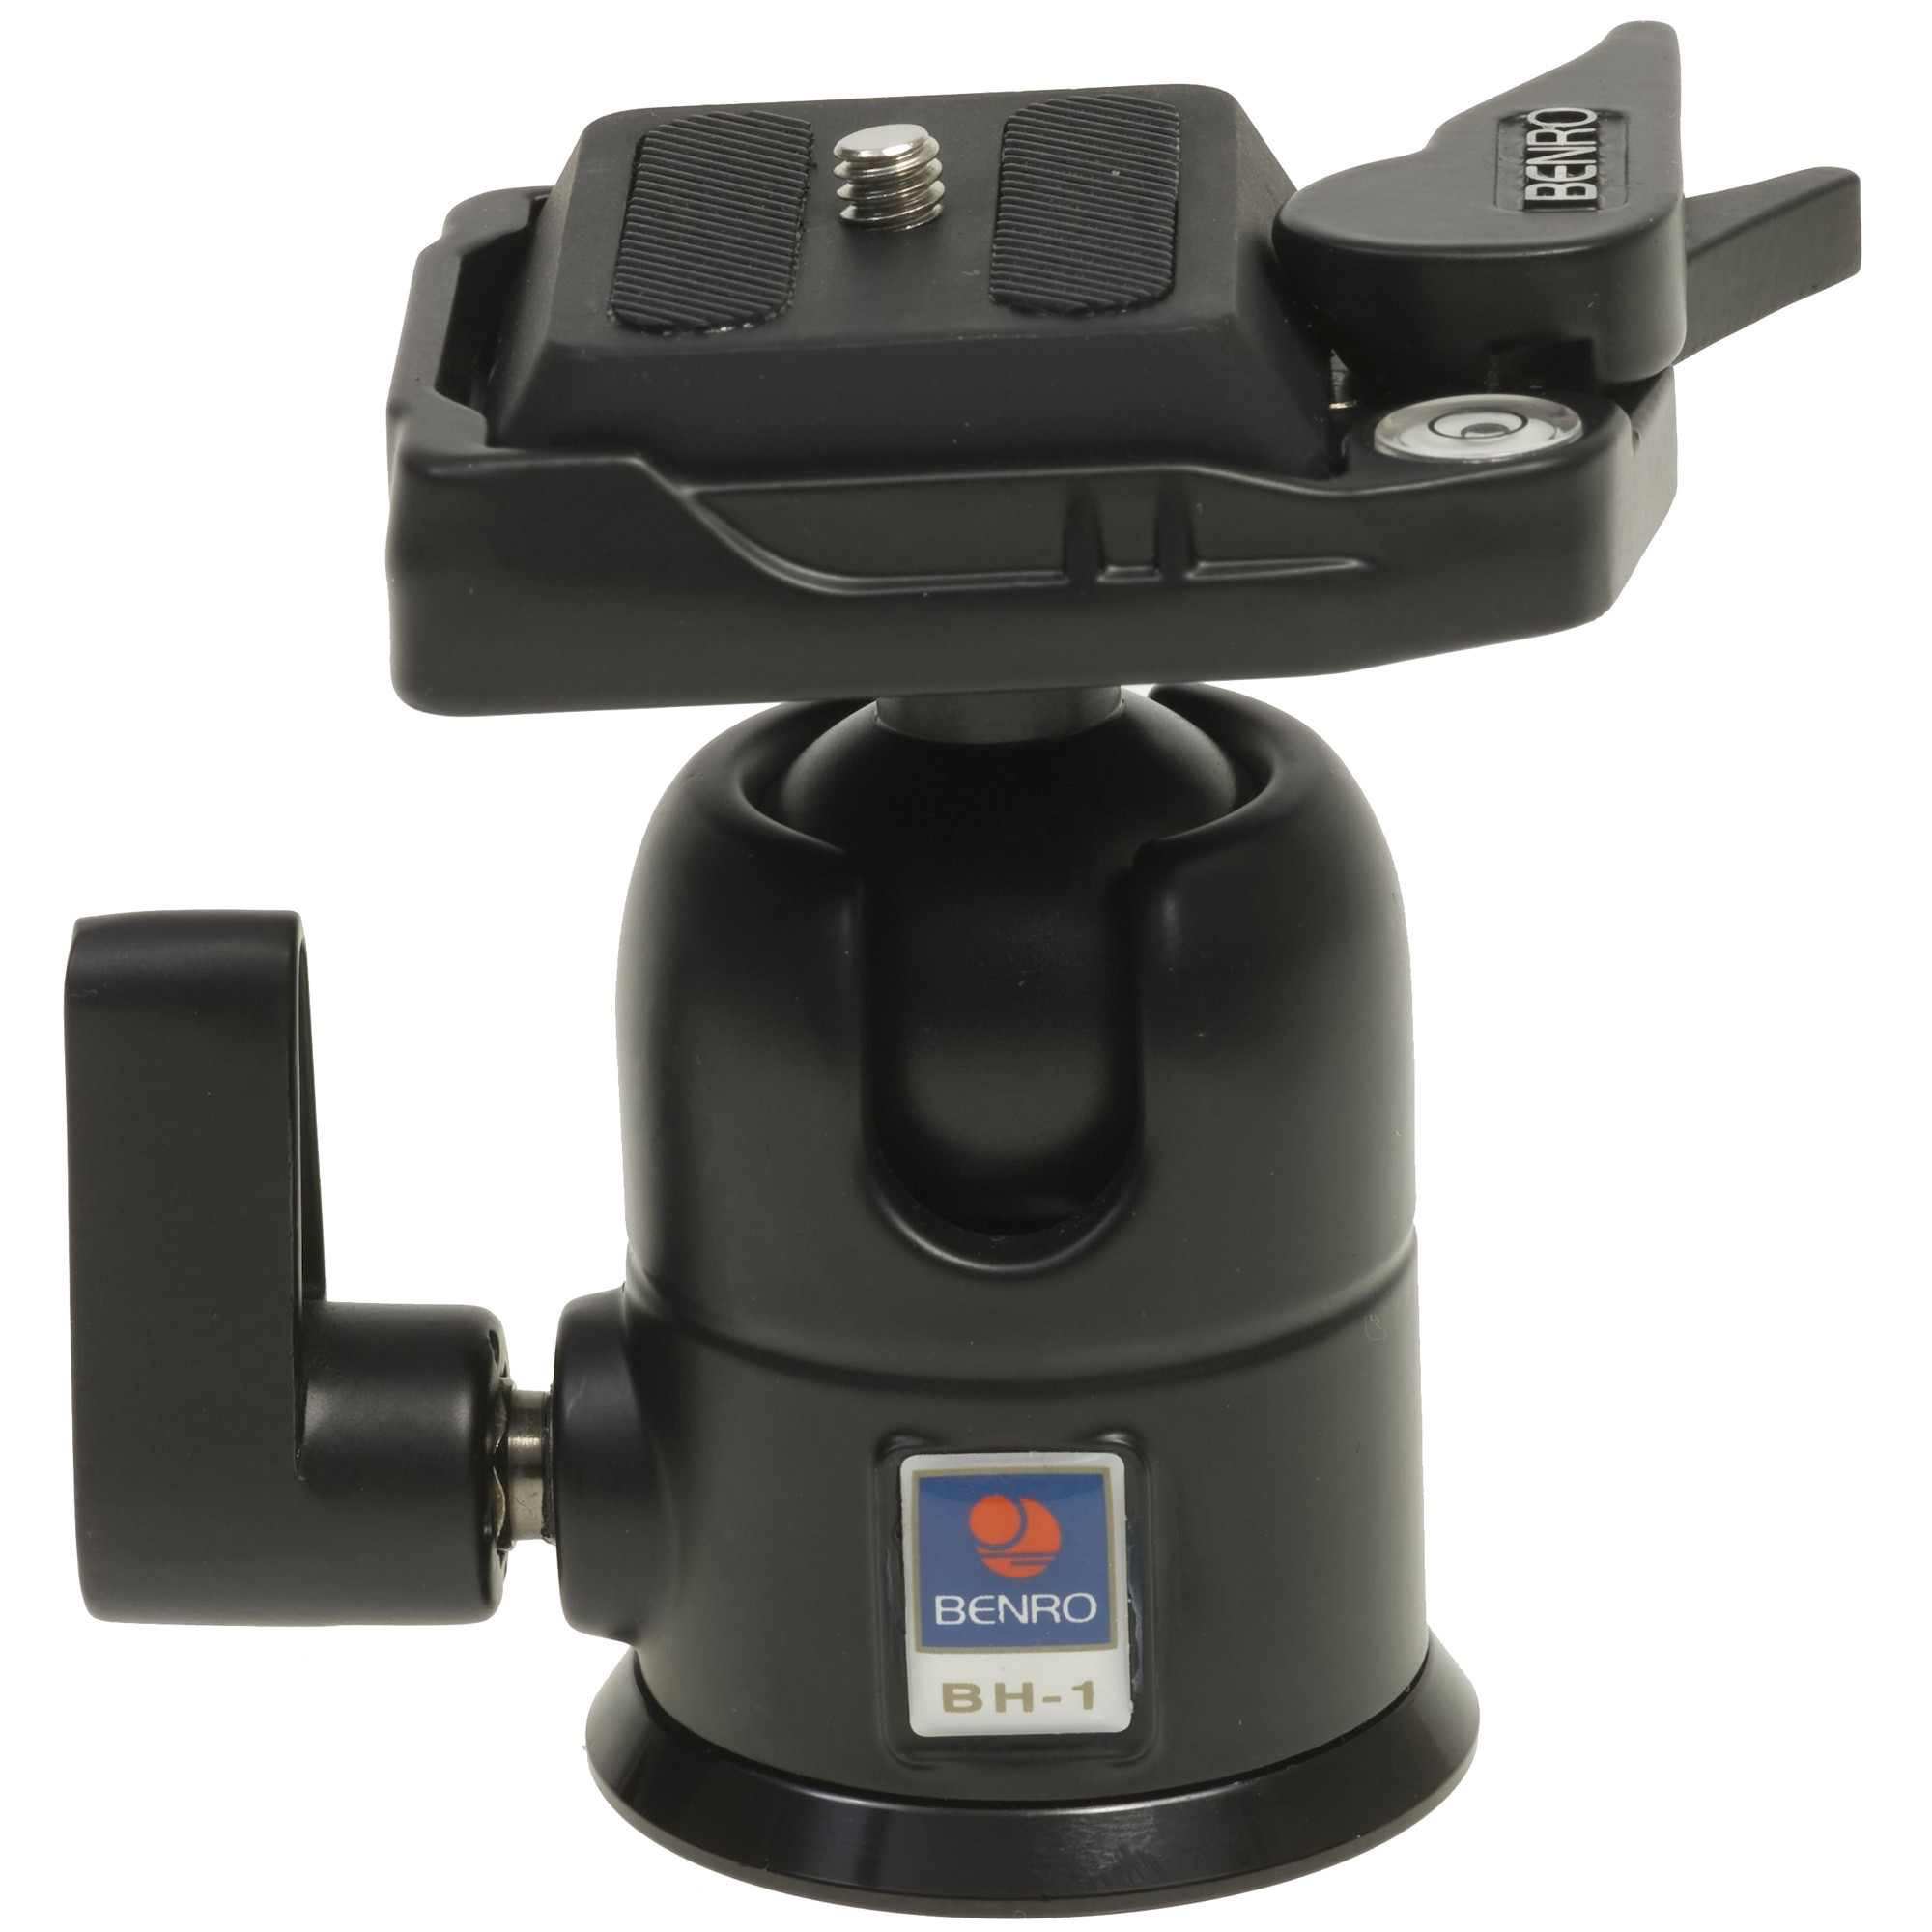 Benro BH-1-M Ballhead with Quick Release